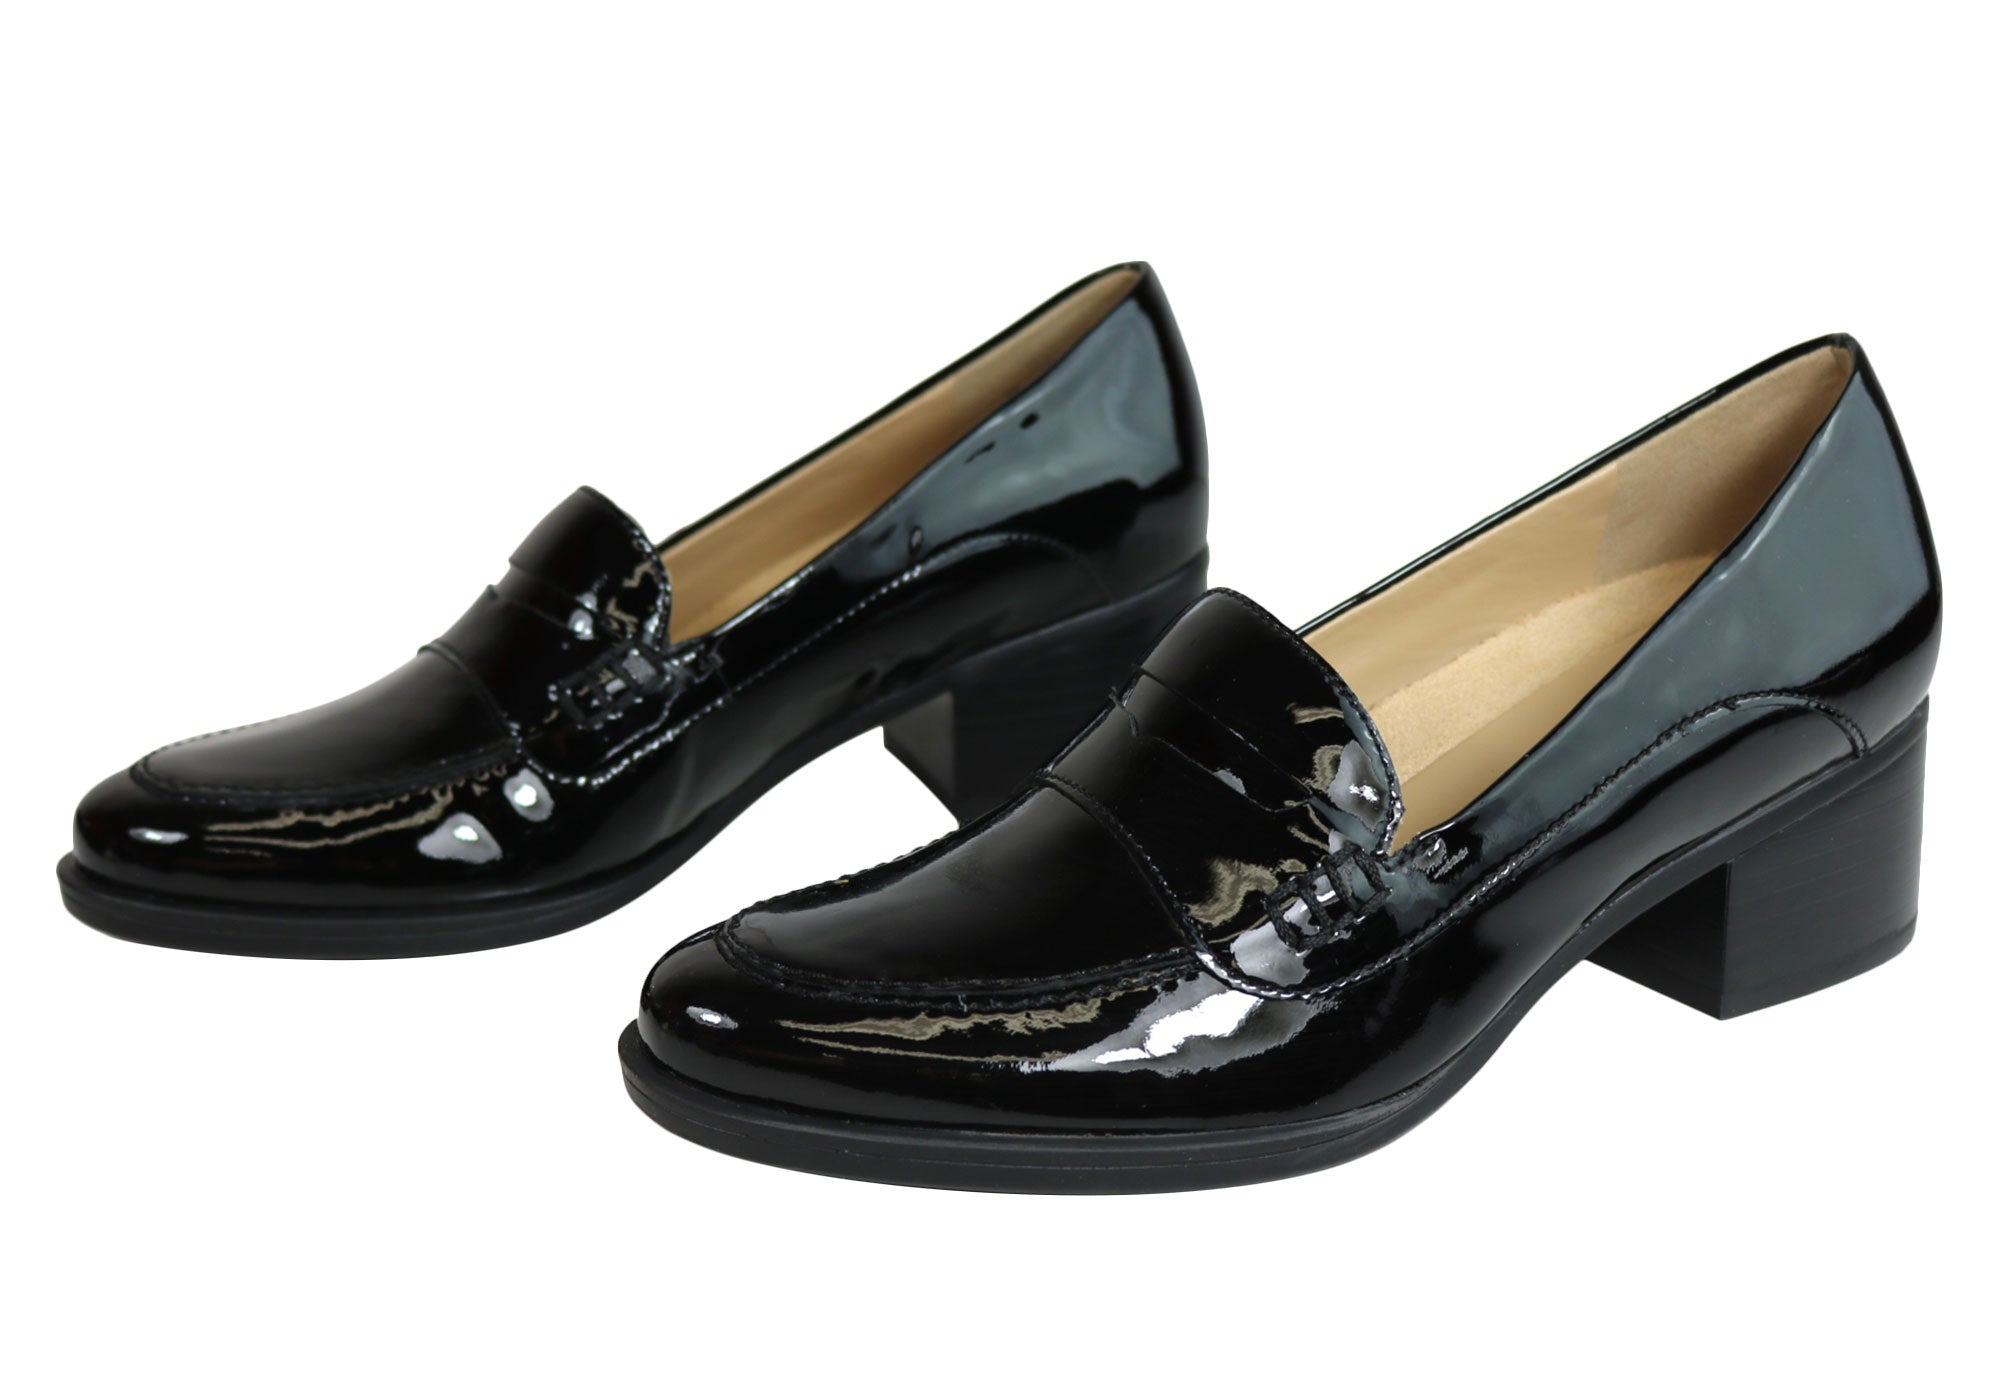 ae207210f2c Home Naturalizer Dinah Womens Mid Heel Patent Leather Loafer Comfort Pumps.  Black Patent  Black Patent  Black Patent  Black Patent  Black Patent  Black  ...